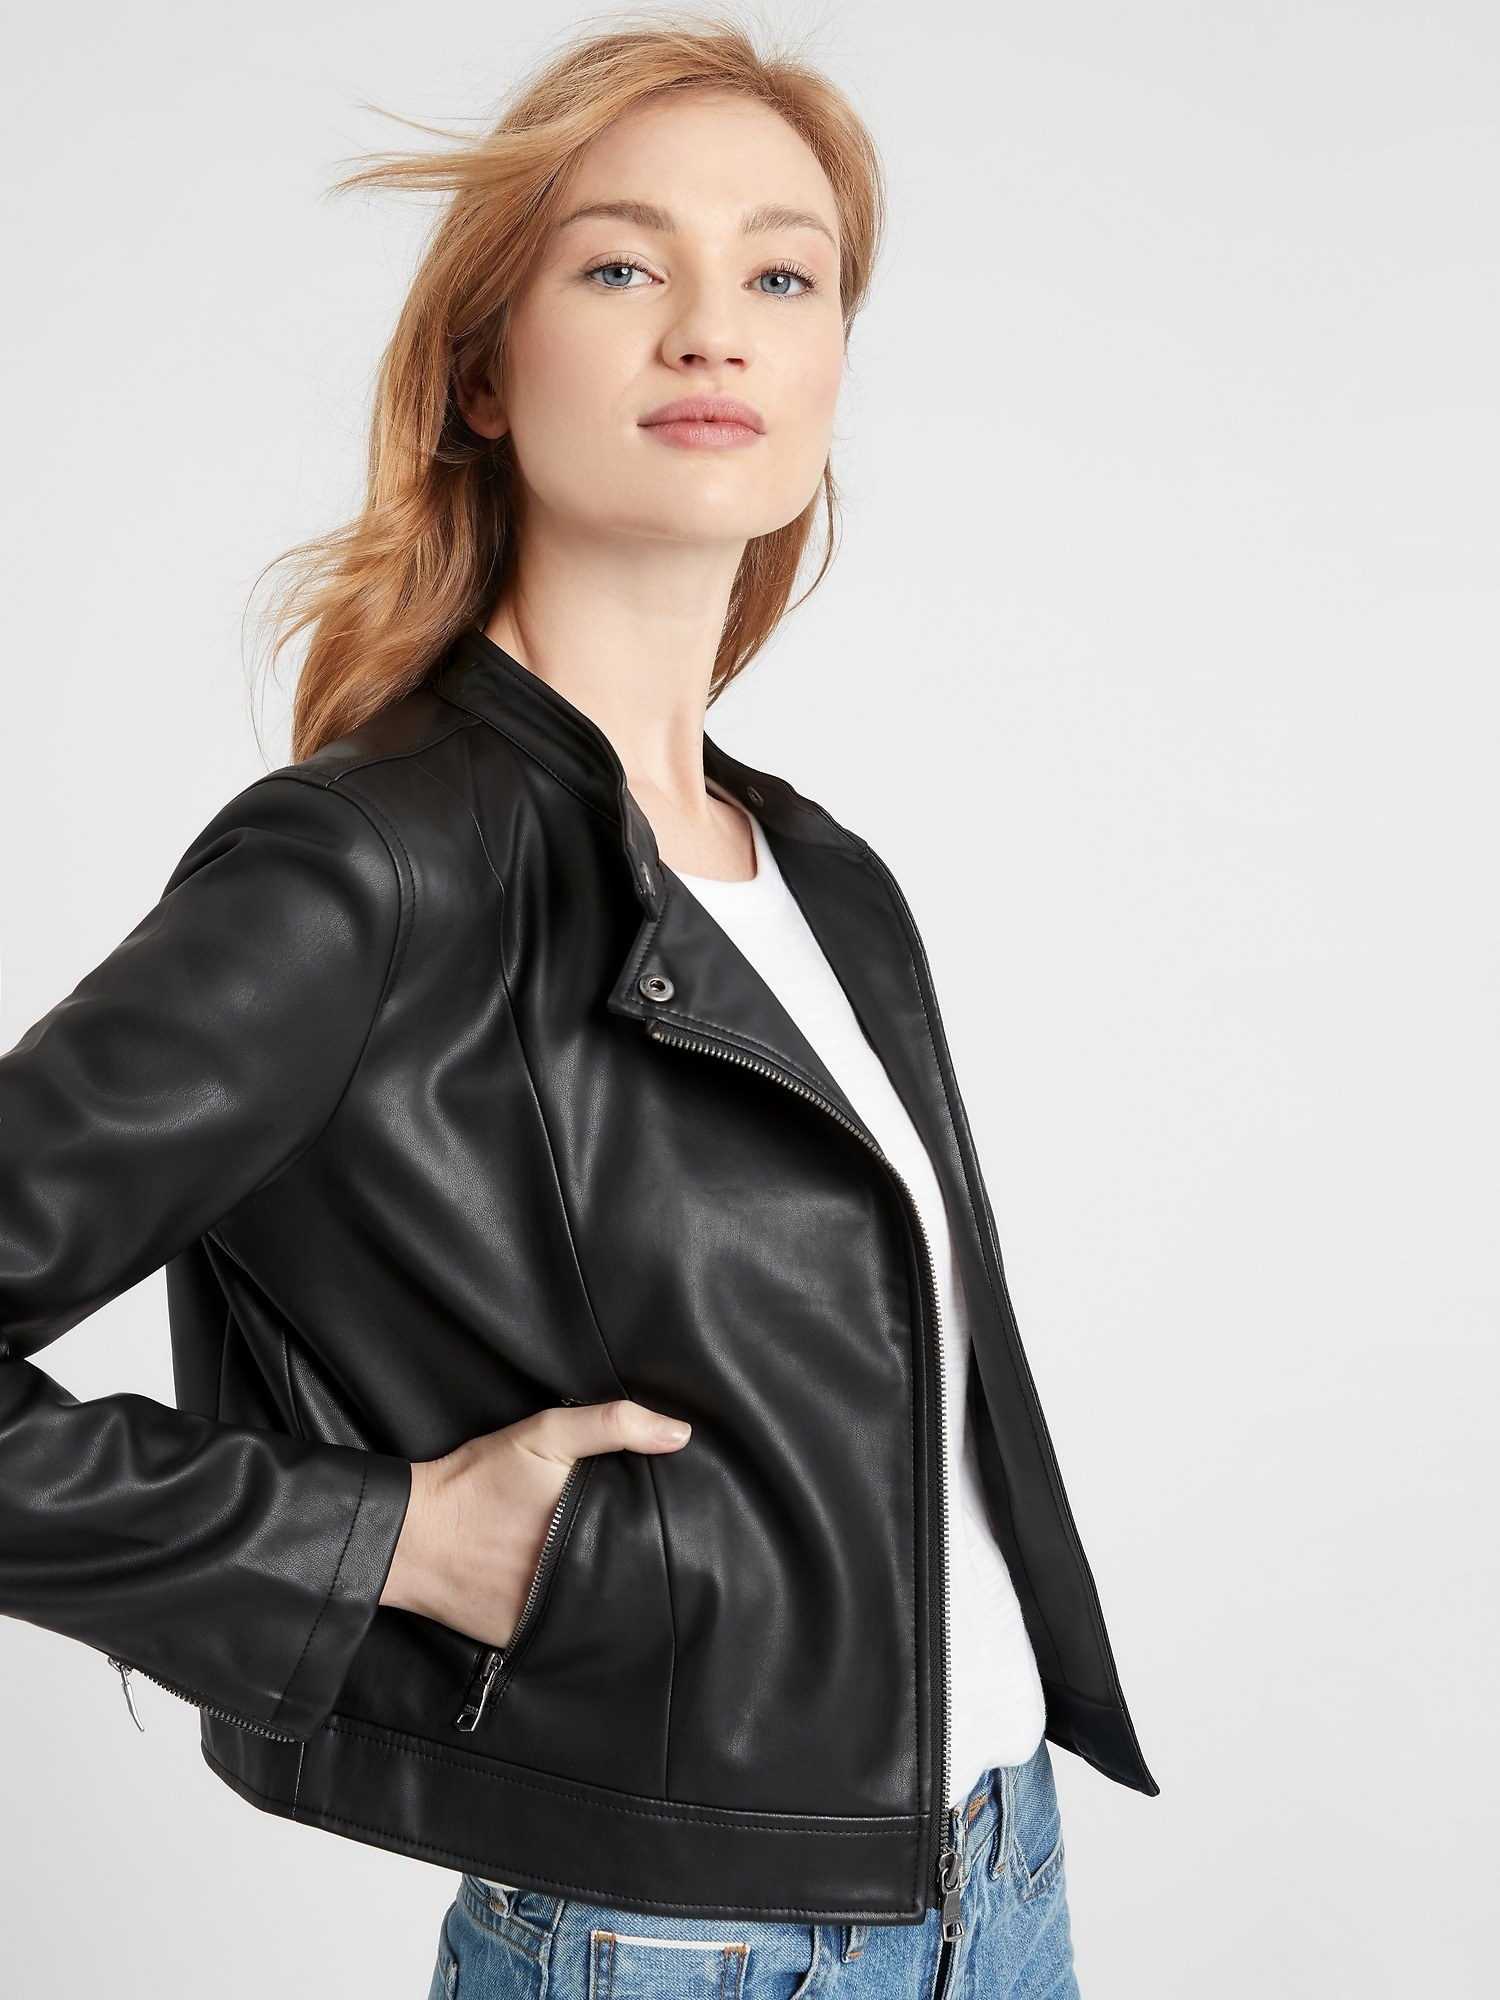 Model in the black leather jacket with minimal hardware and a standing snap collar